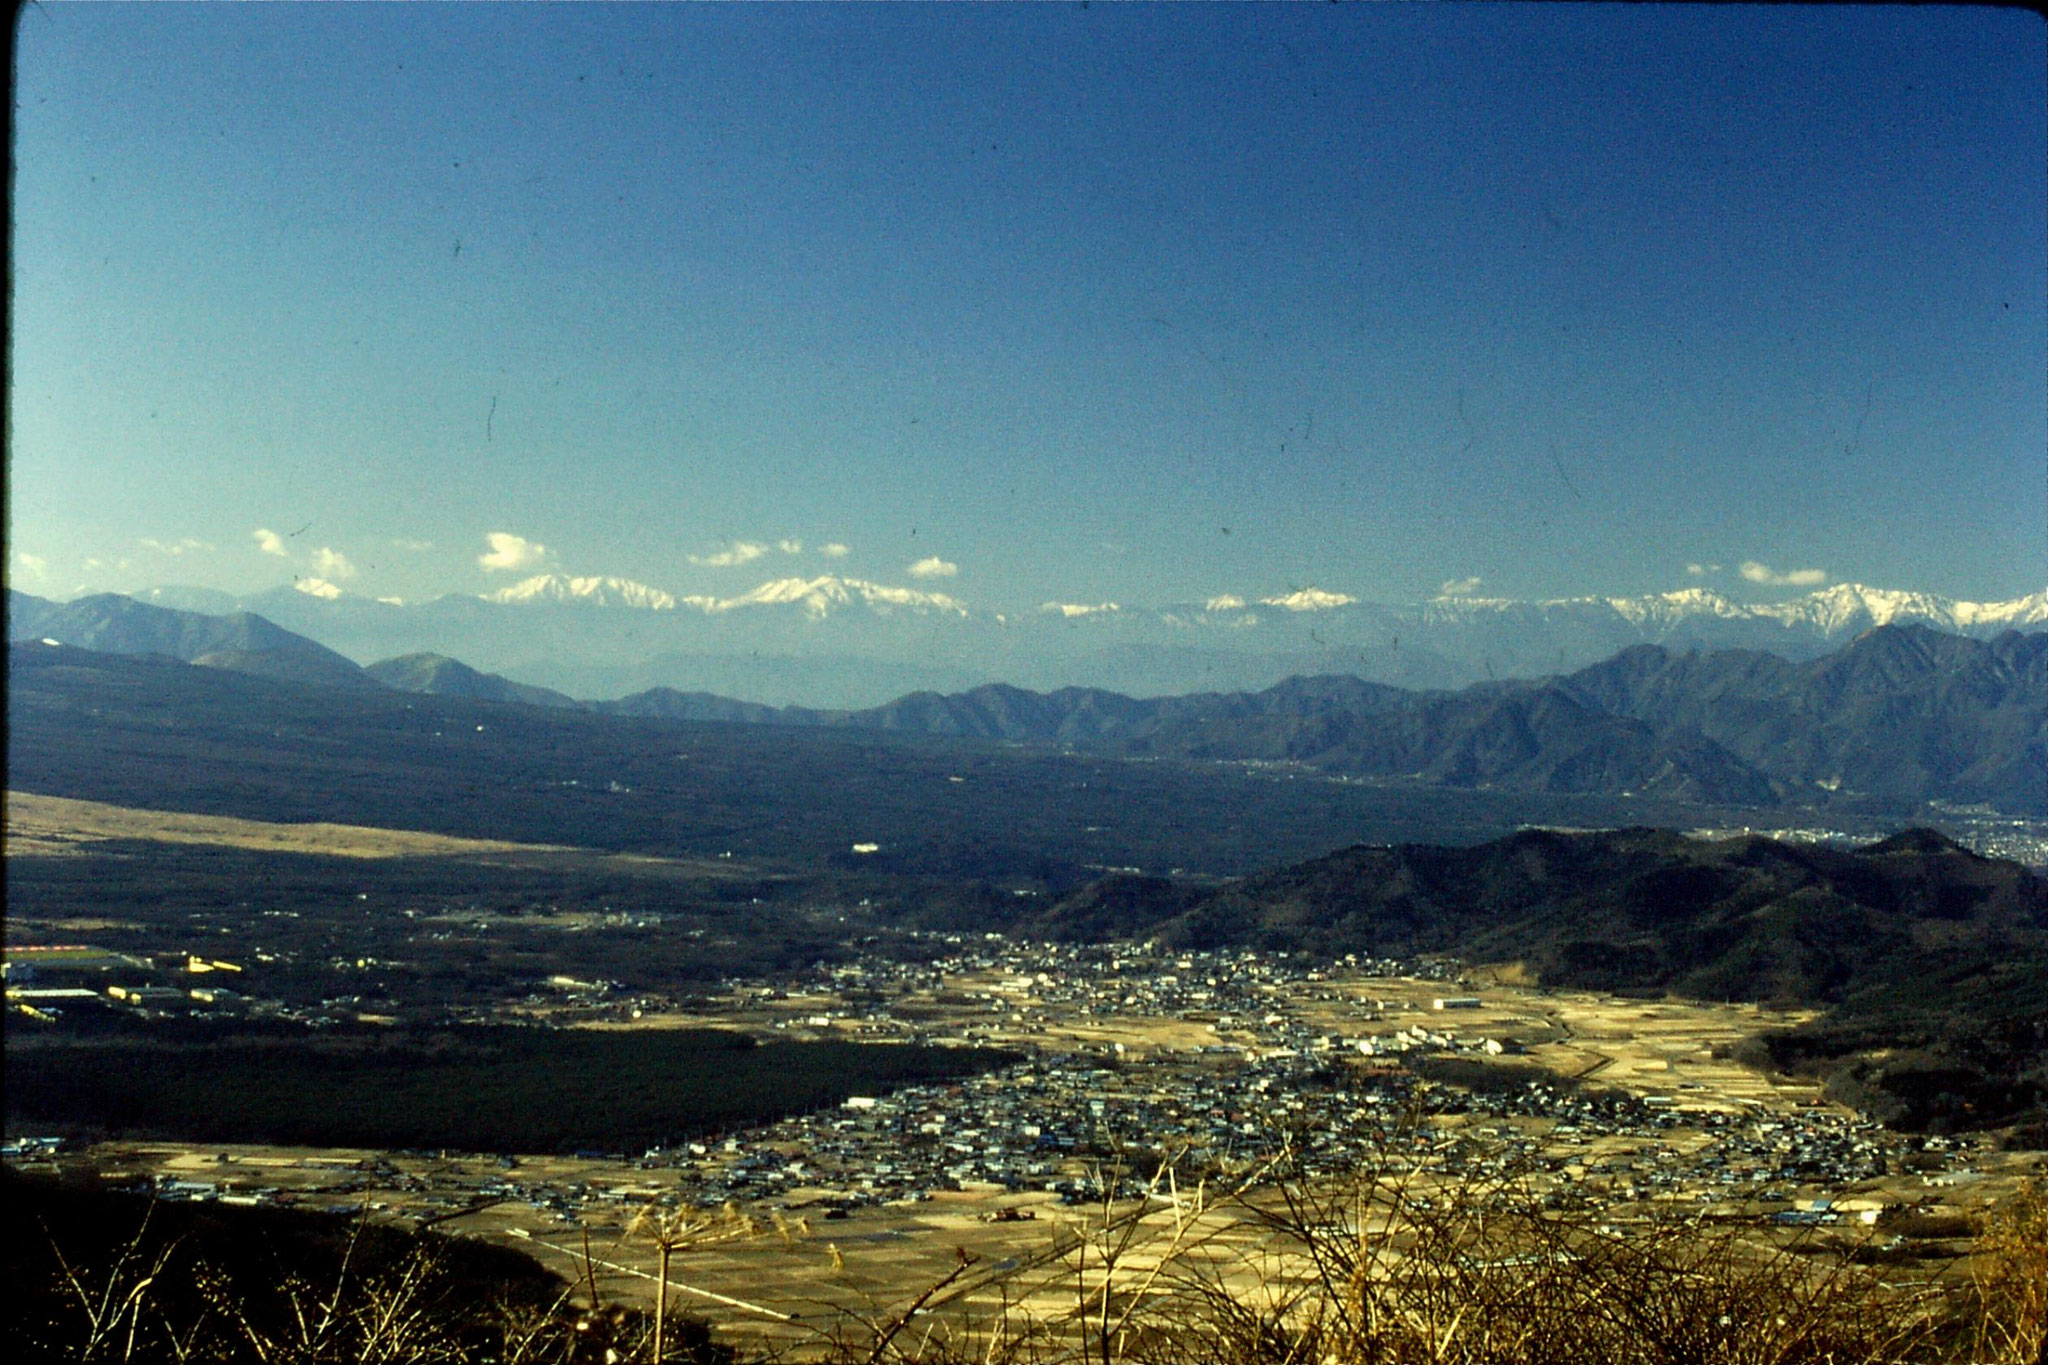 31/12/1988: 9: view across Five Lake area